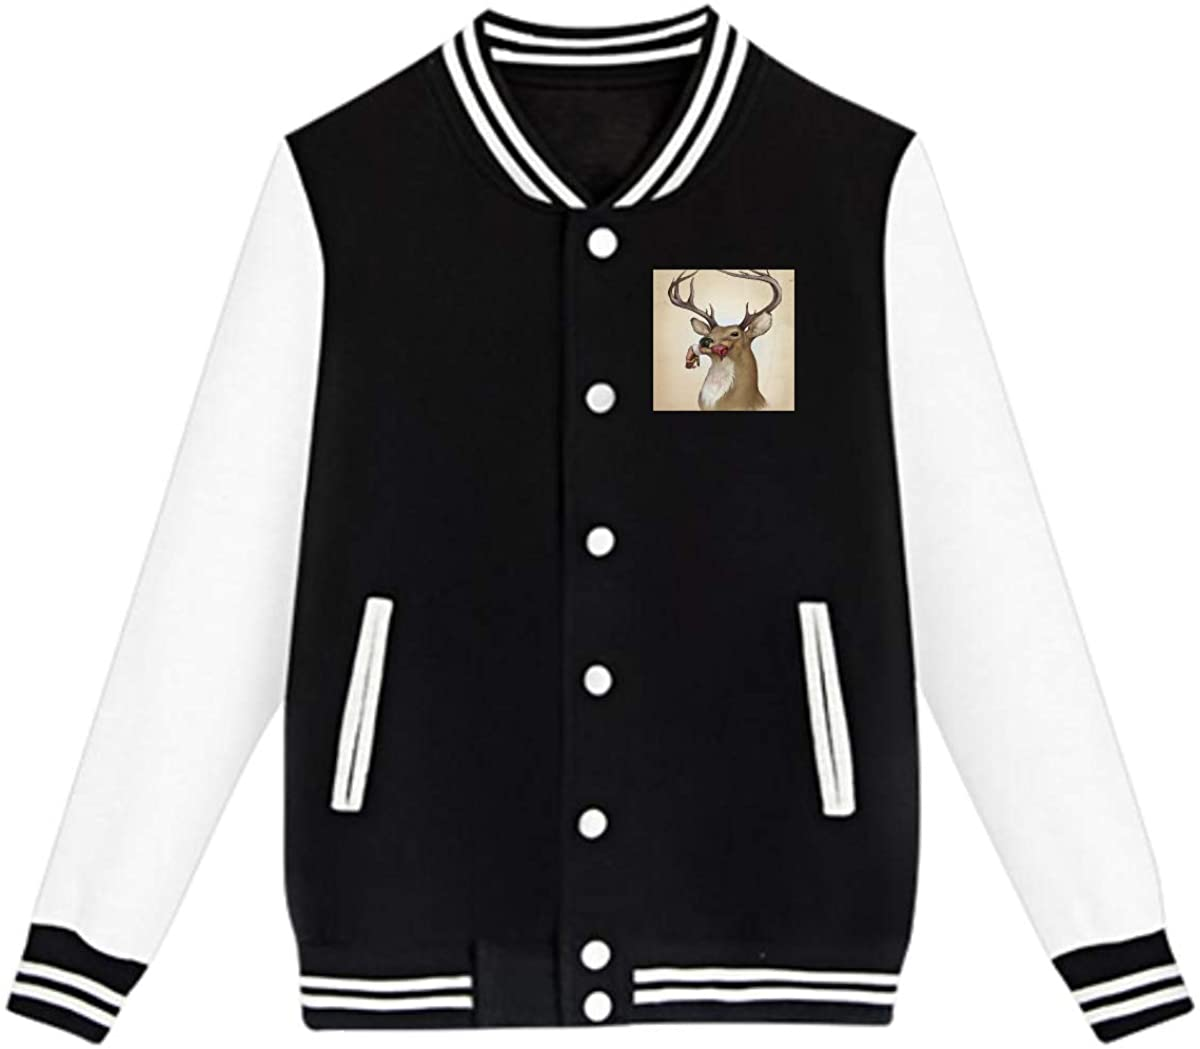 Zombie Deer Baseball Jacket Custom Fleece Varsity Uniform Sport Coat for Youth